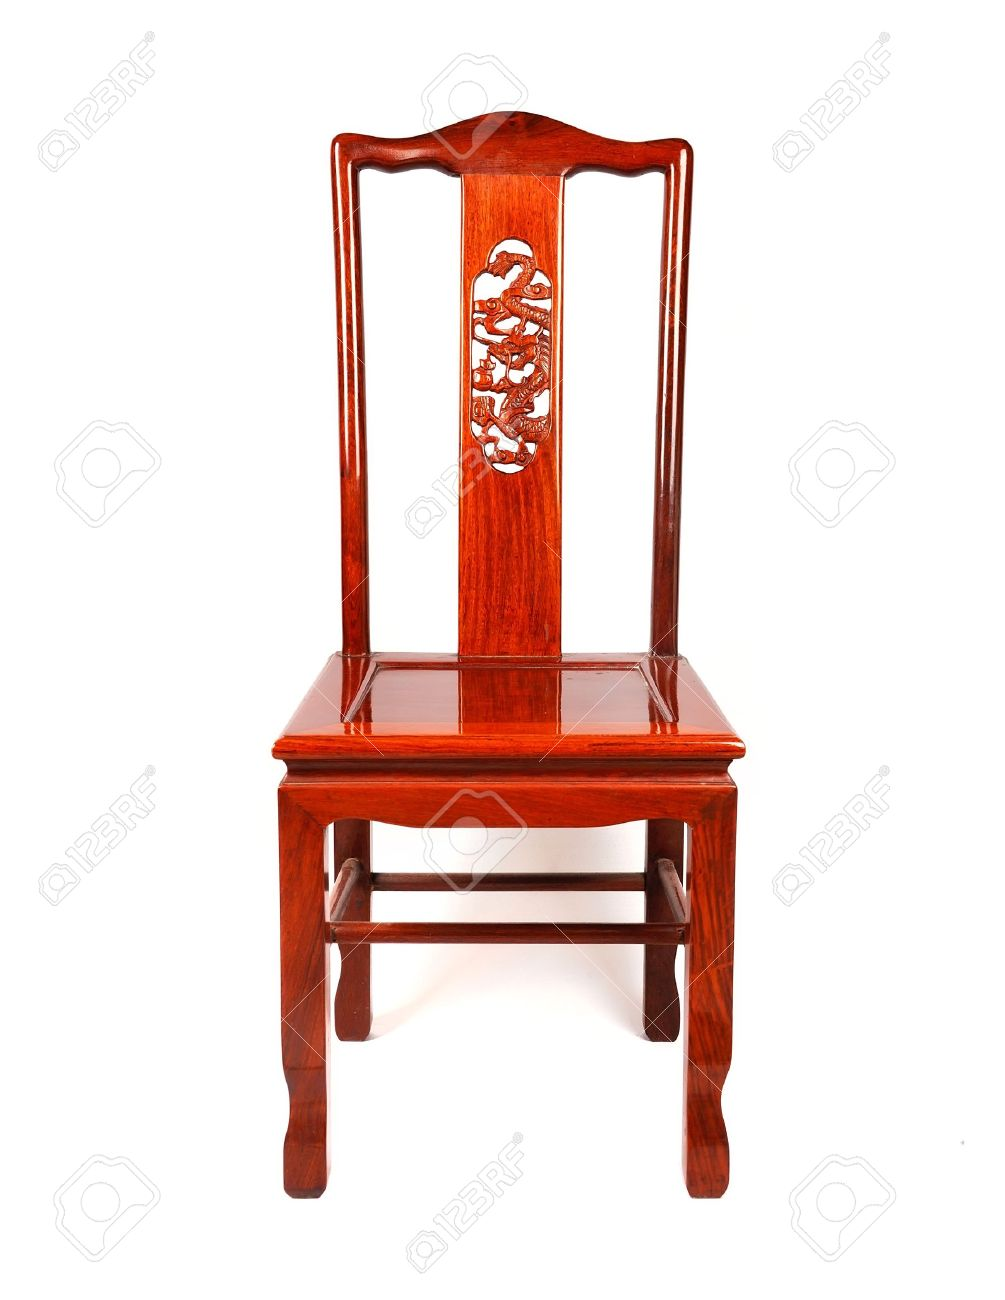 Antique furniture chair - Chinese Antique Ming Style Furniture Chair Made From Elm Wood Stock Photo 13303782